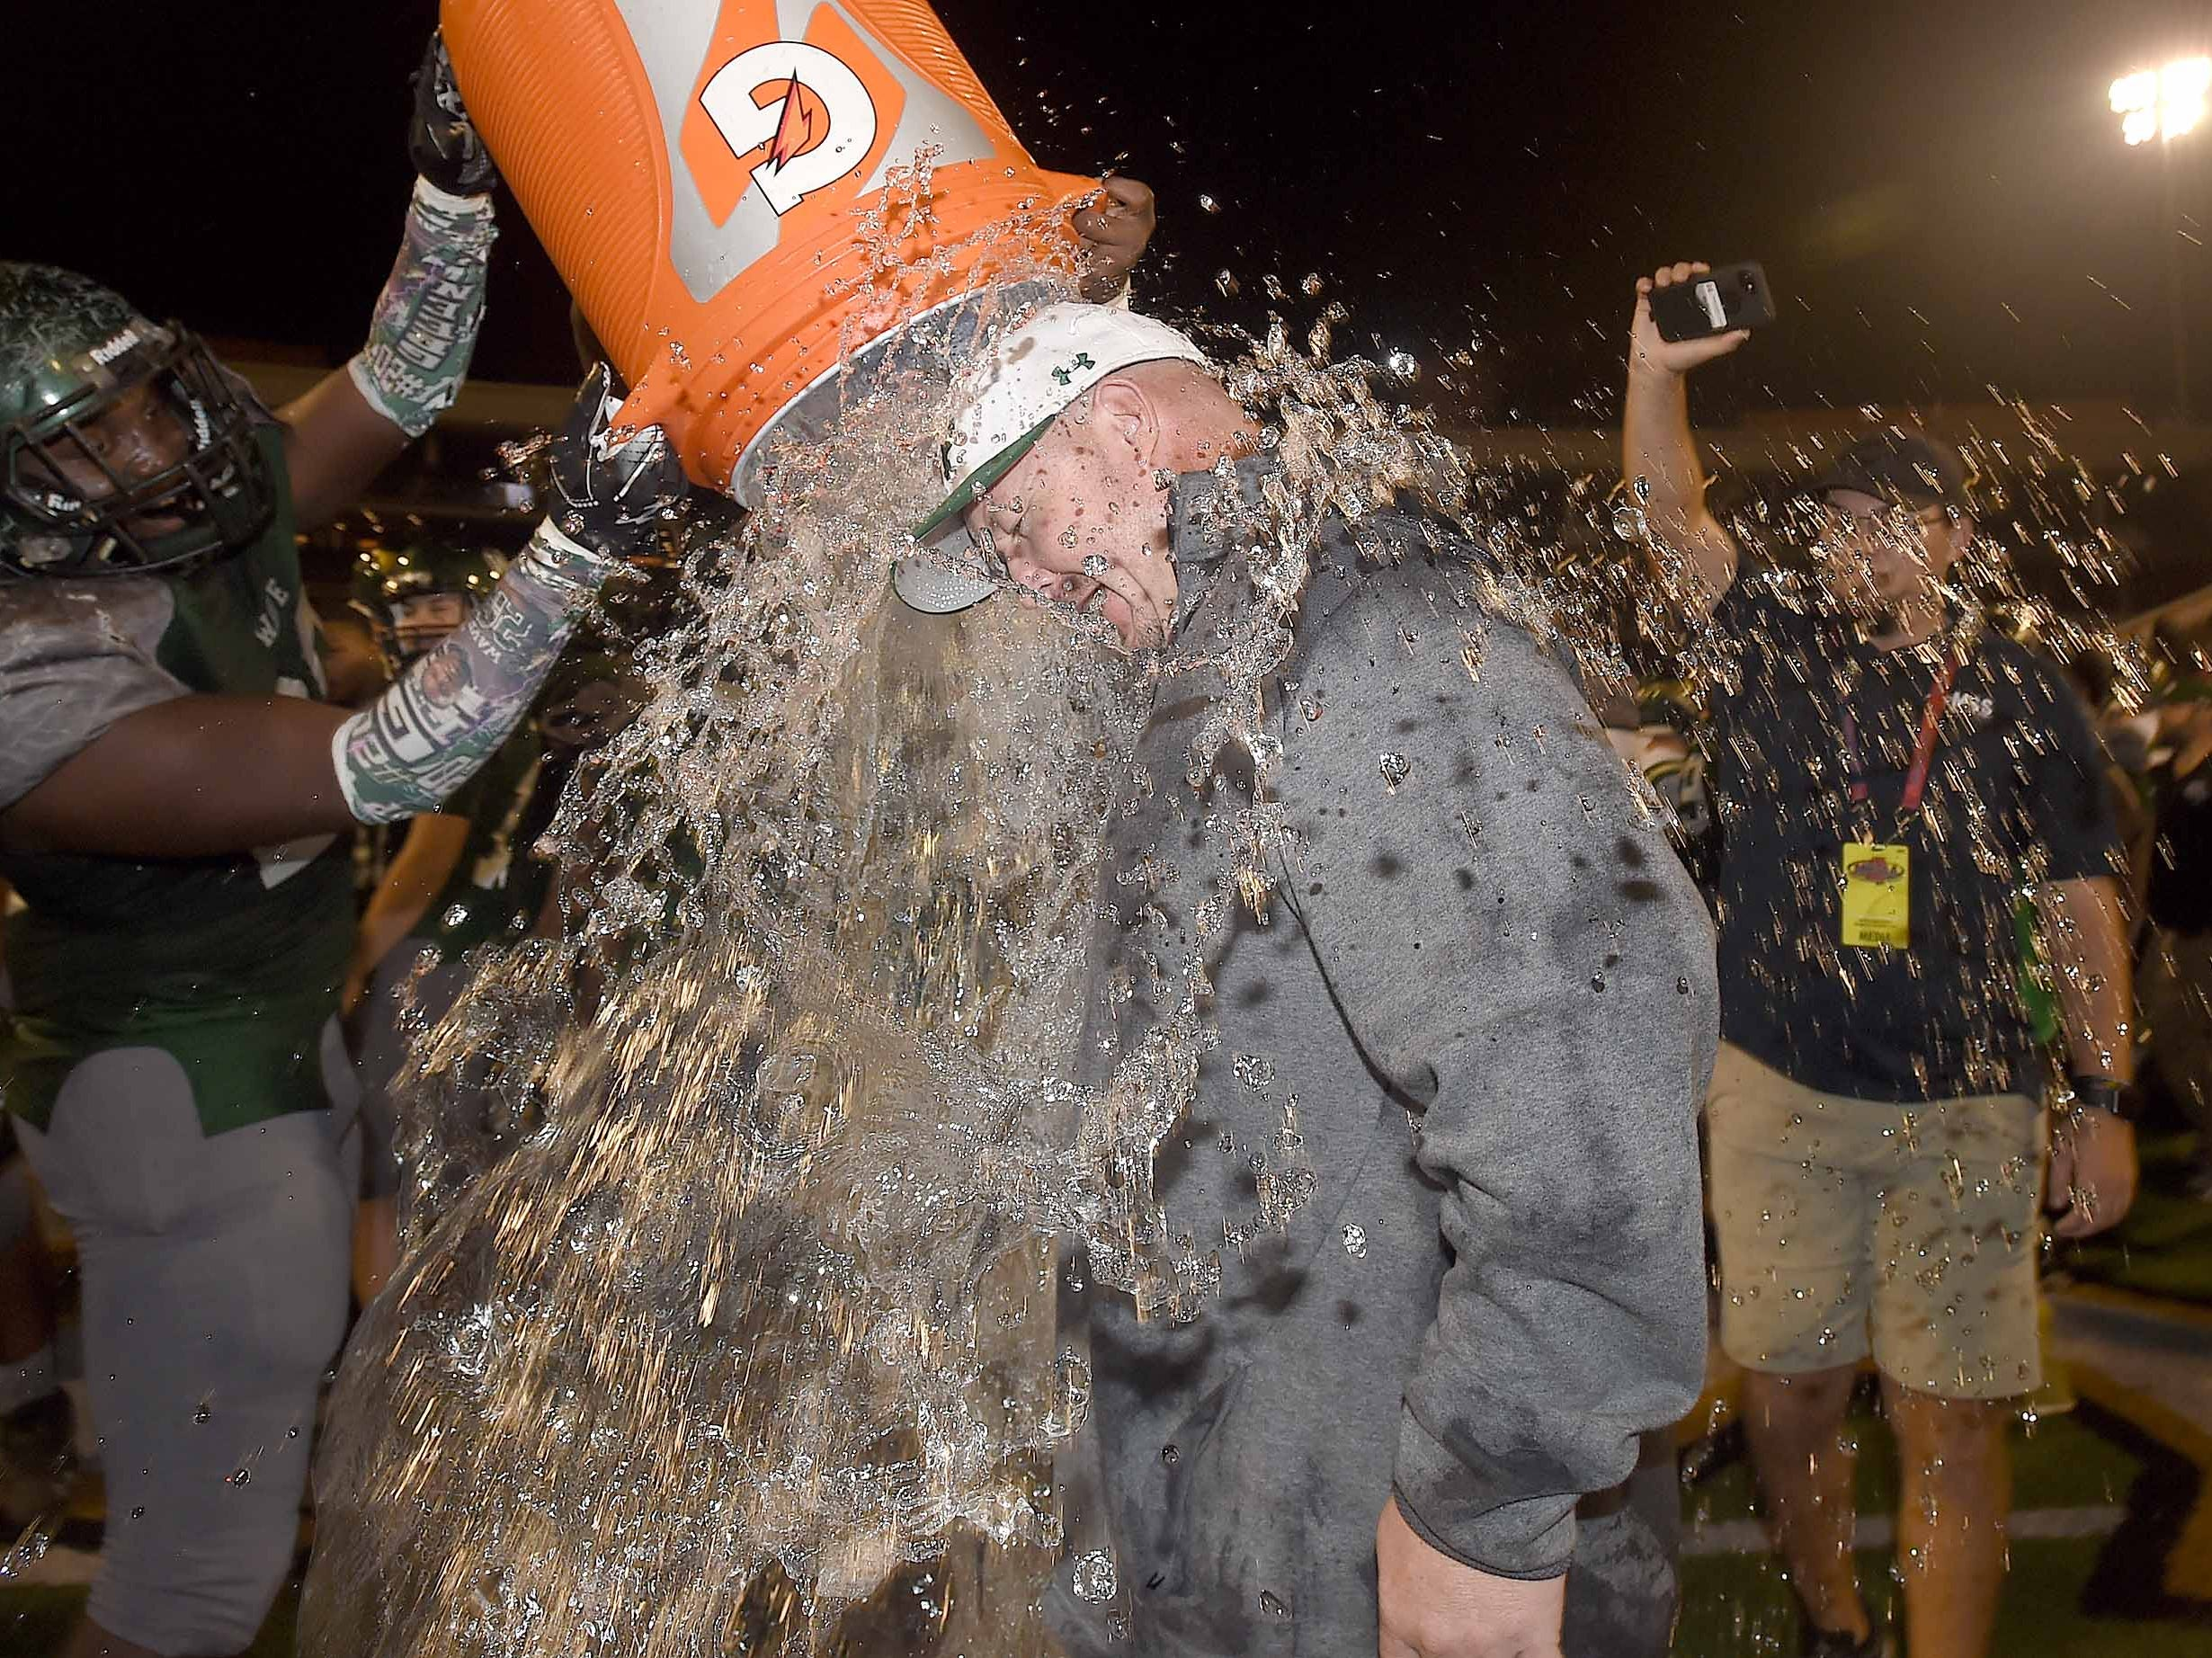 West Point head coach Chris Chambless gets a second ice water bath on Saturday, December 1, 2018, in the MHSAA BlueCross BlueShield Gridiron Classic High School Football Championships in M.M. Roberts Stadium on the University of Southern Mississippi campus in Hattiesburg, Miss.